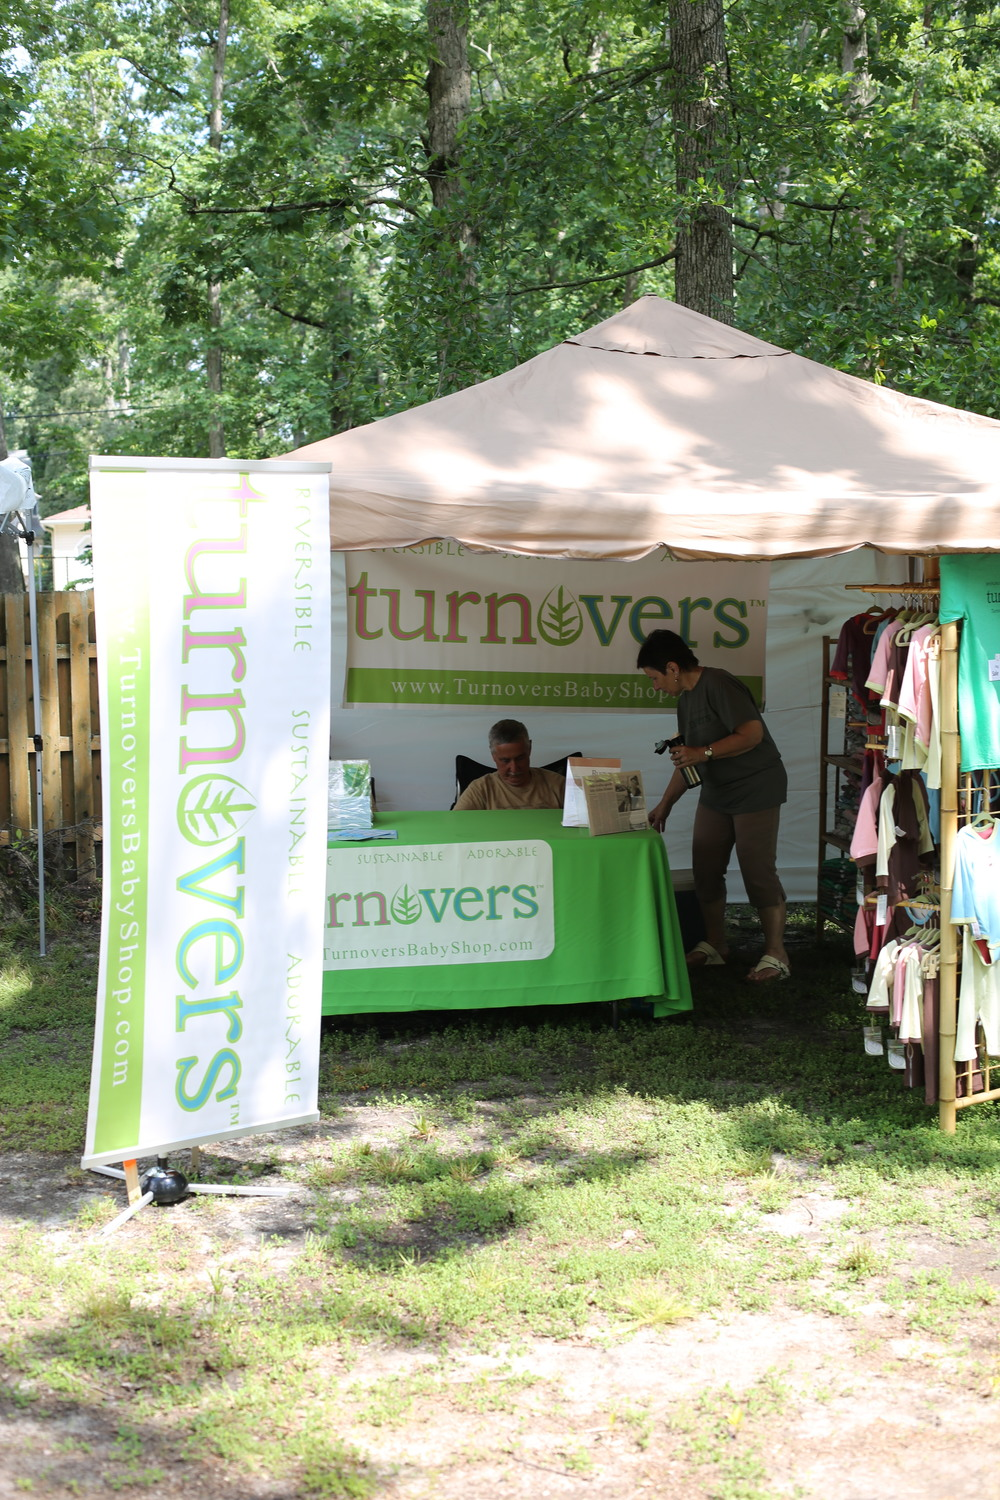 Our tent looked exactly as we had envisioned, along with bamboo fixtures and a professional display of our merchandise. Dave & Mary Schrag (pictured above) were involved in every aspect and contributed so much to this project!